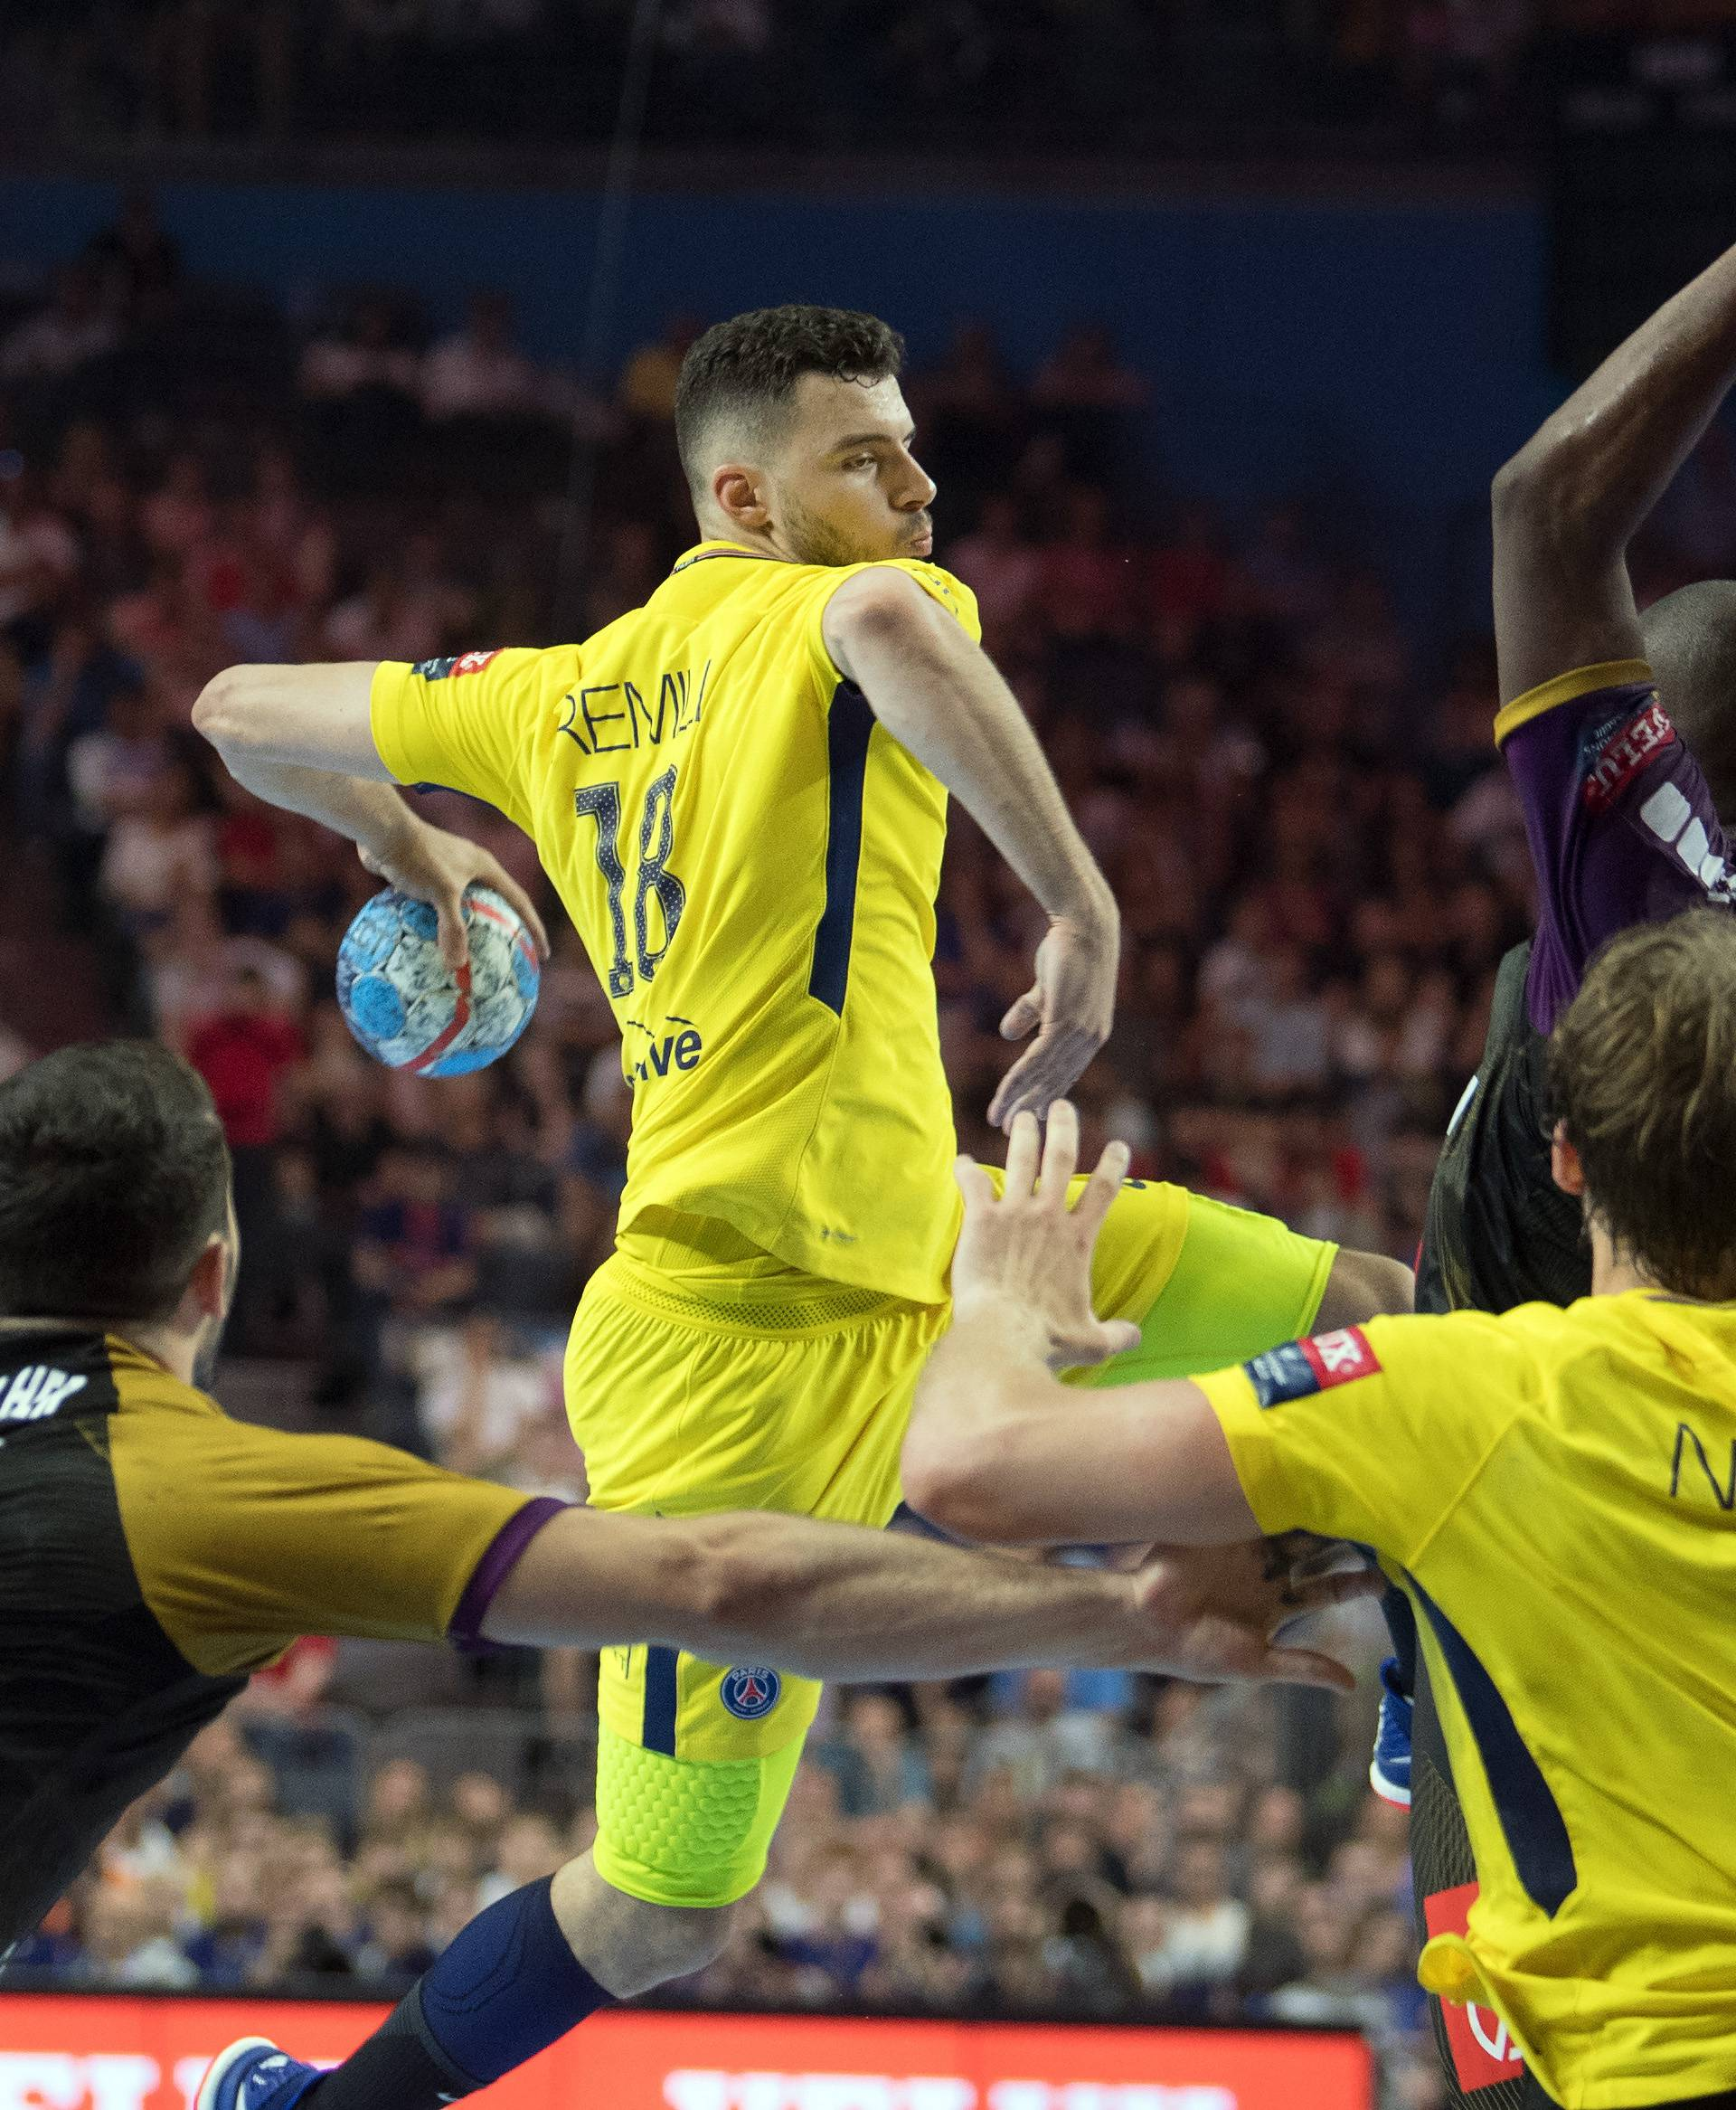 Handball: HBC Nantes - Paris St. Germain